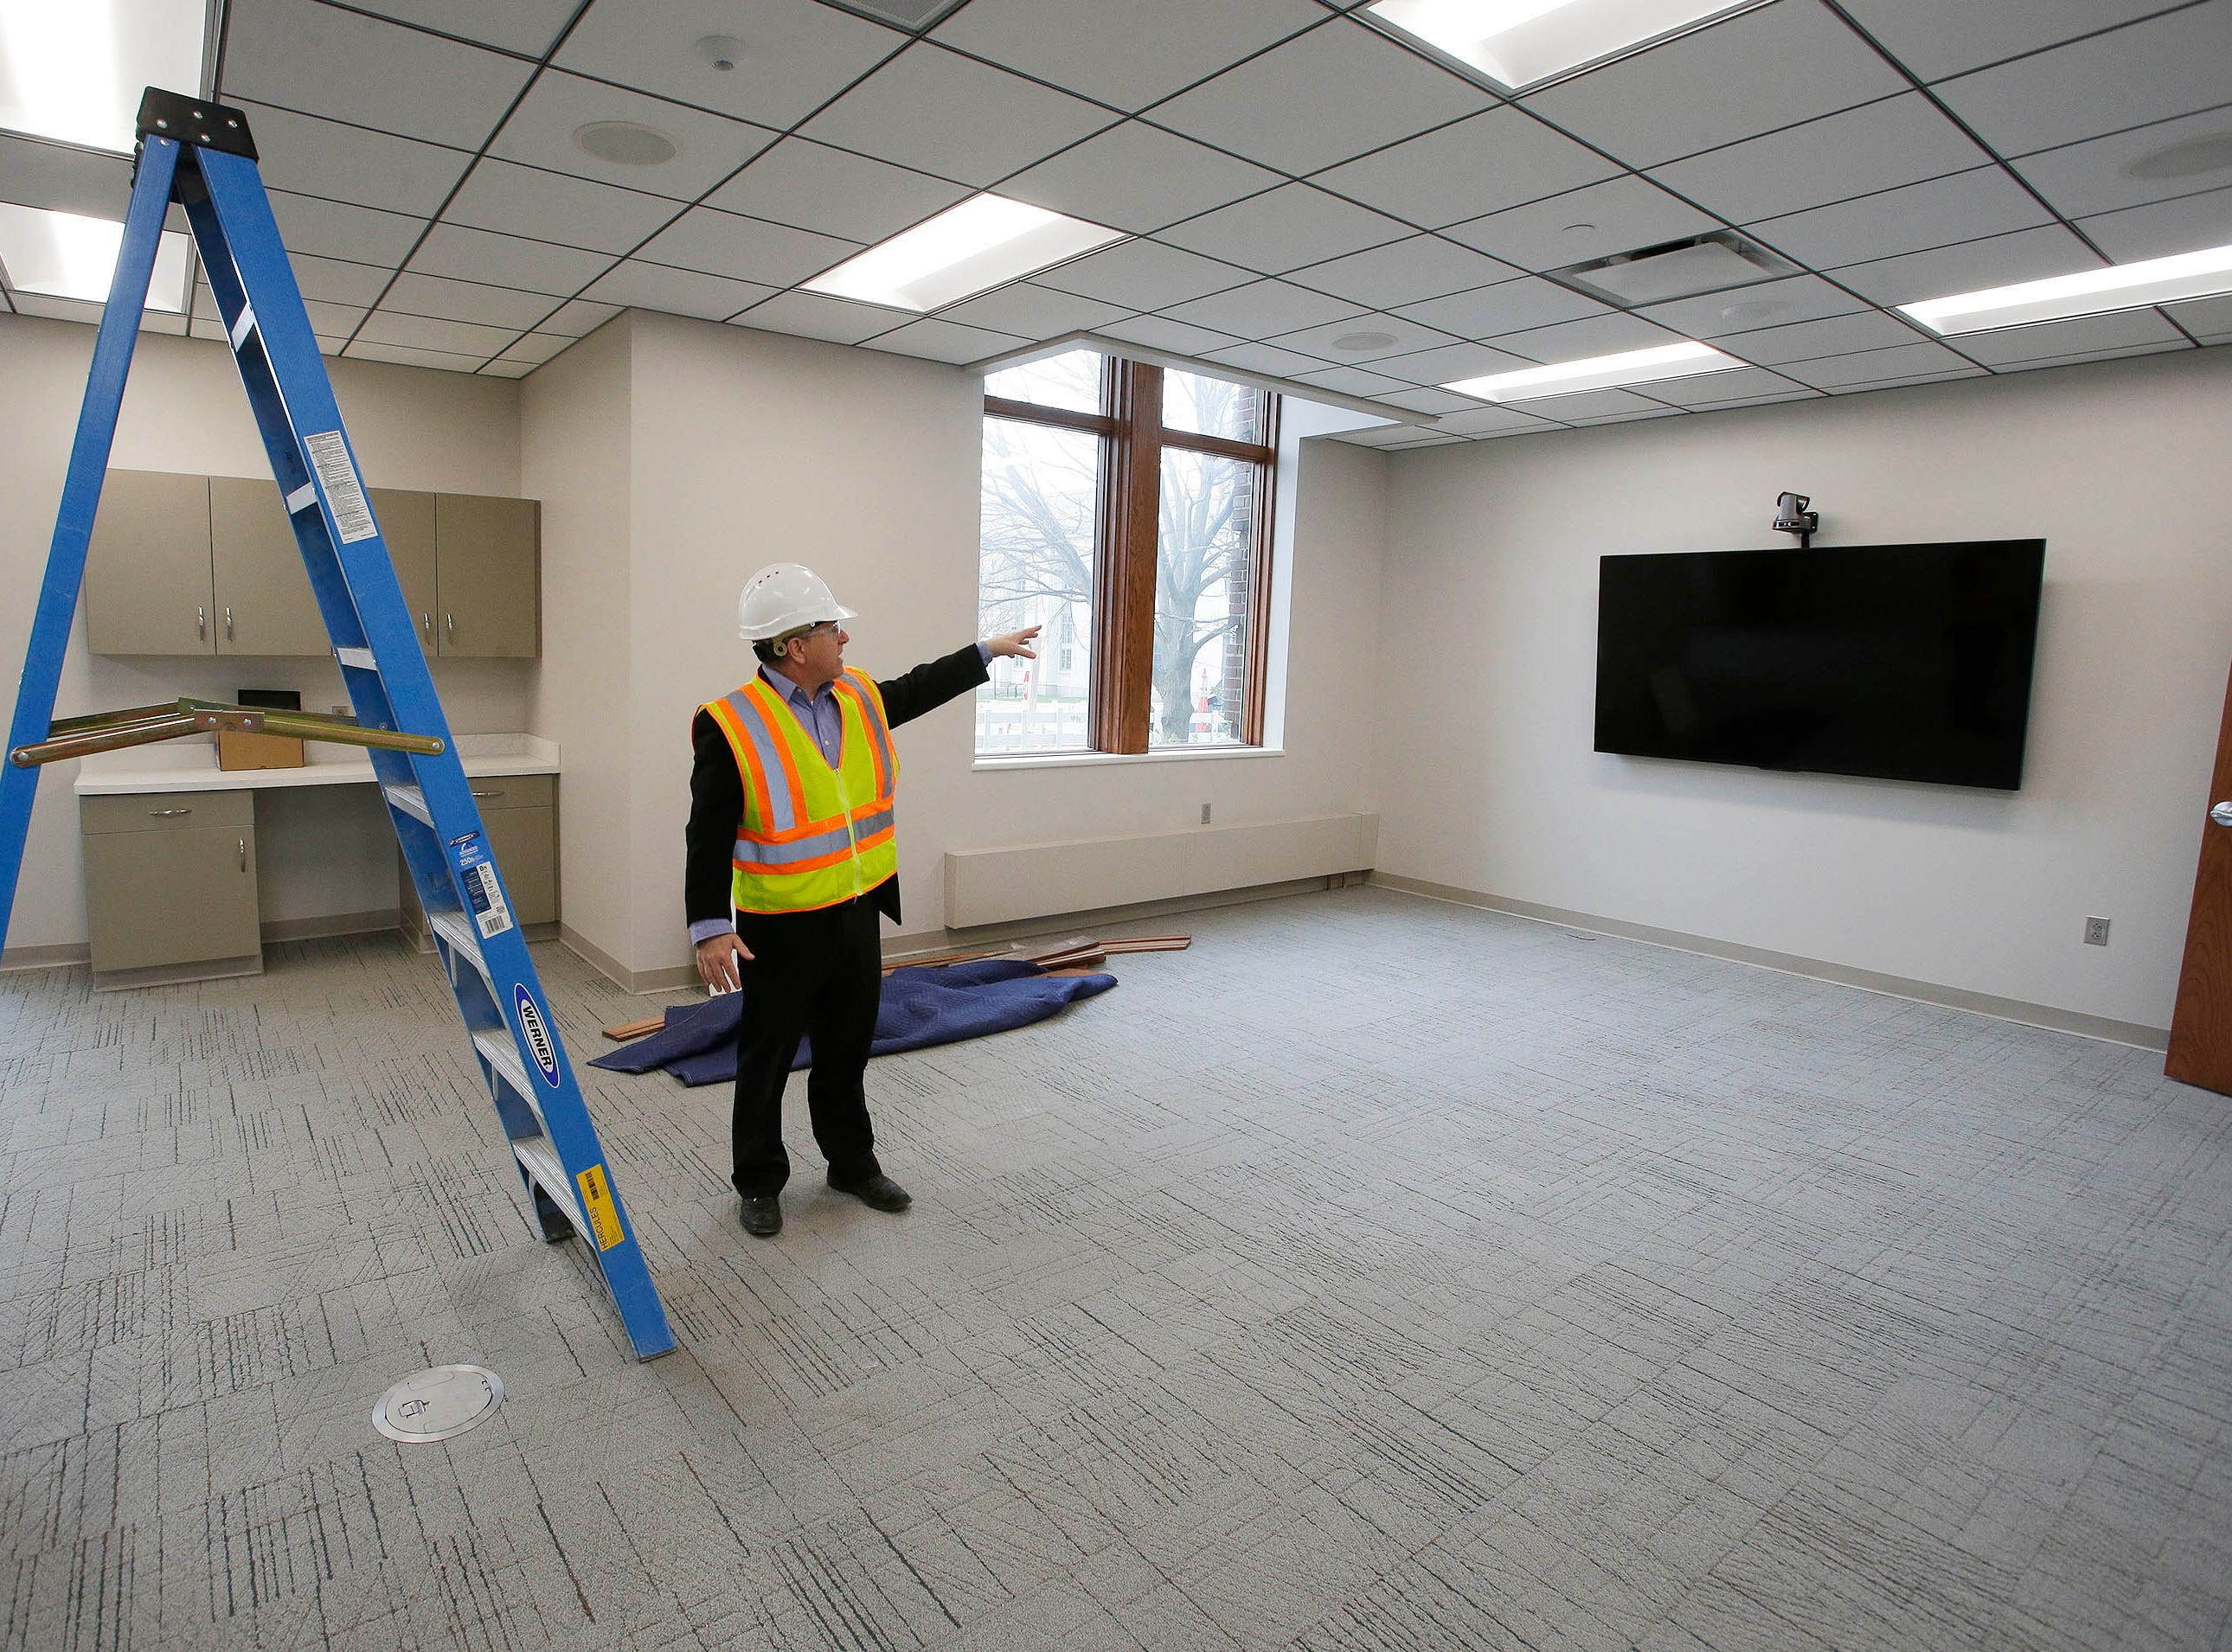 Sheboygan Director of Public Works David Biebel points out one of the multi-media screens seen in a meeting area at Sheboygan City Hall, Tuesday, May 7, 2019, in Sheboygan, Wis.